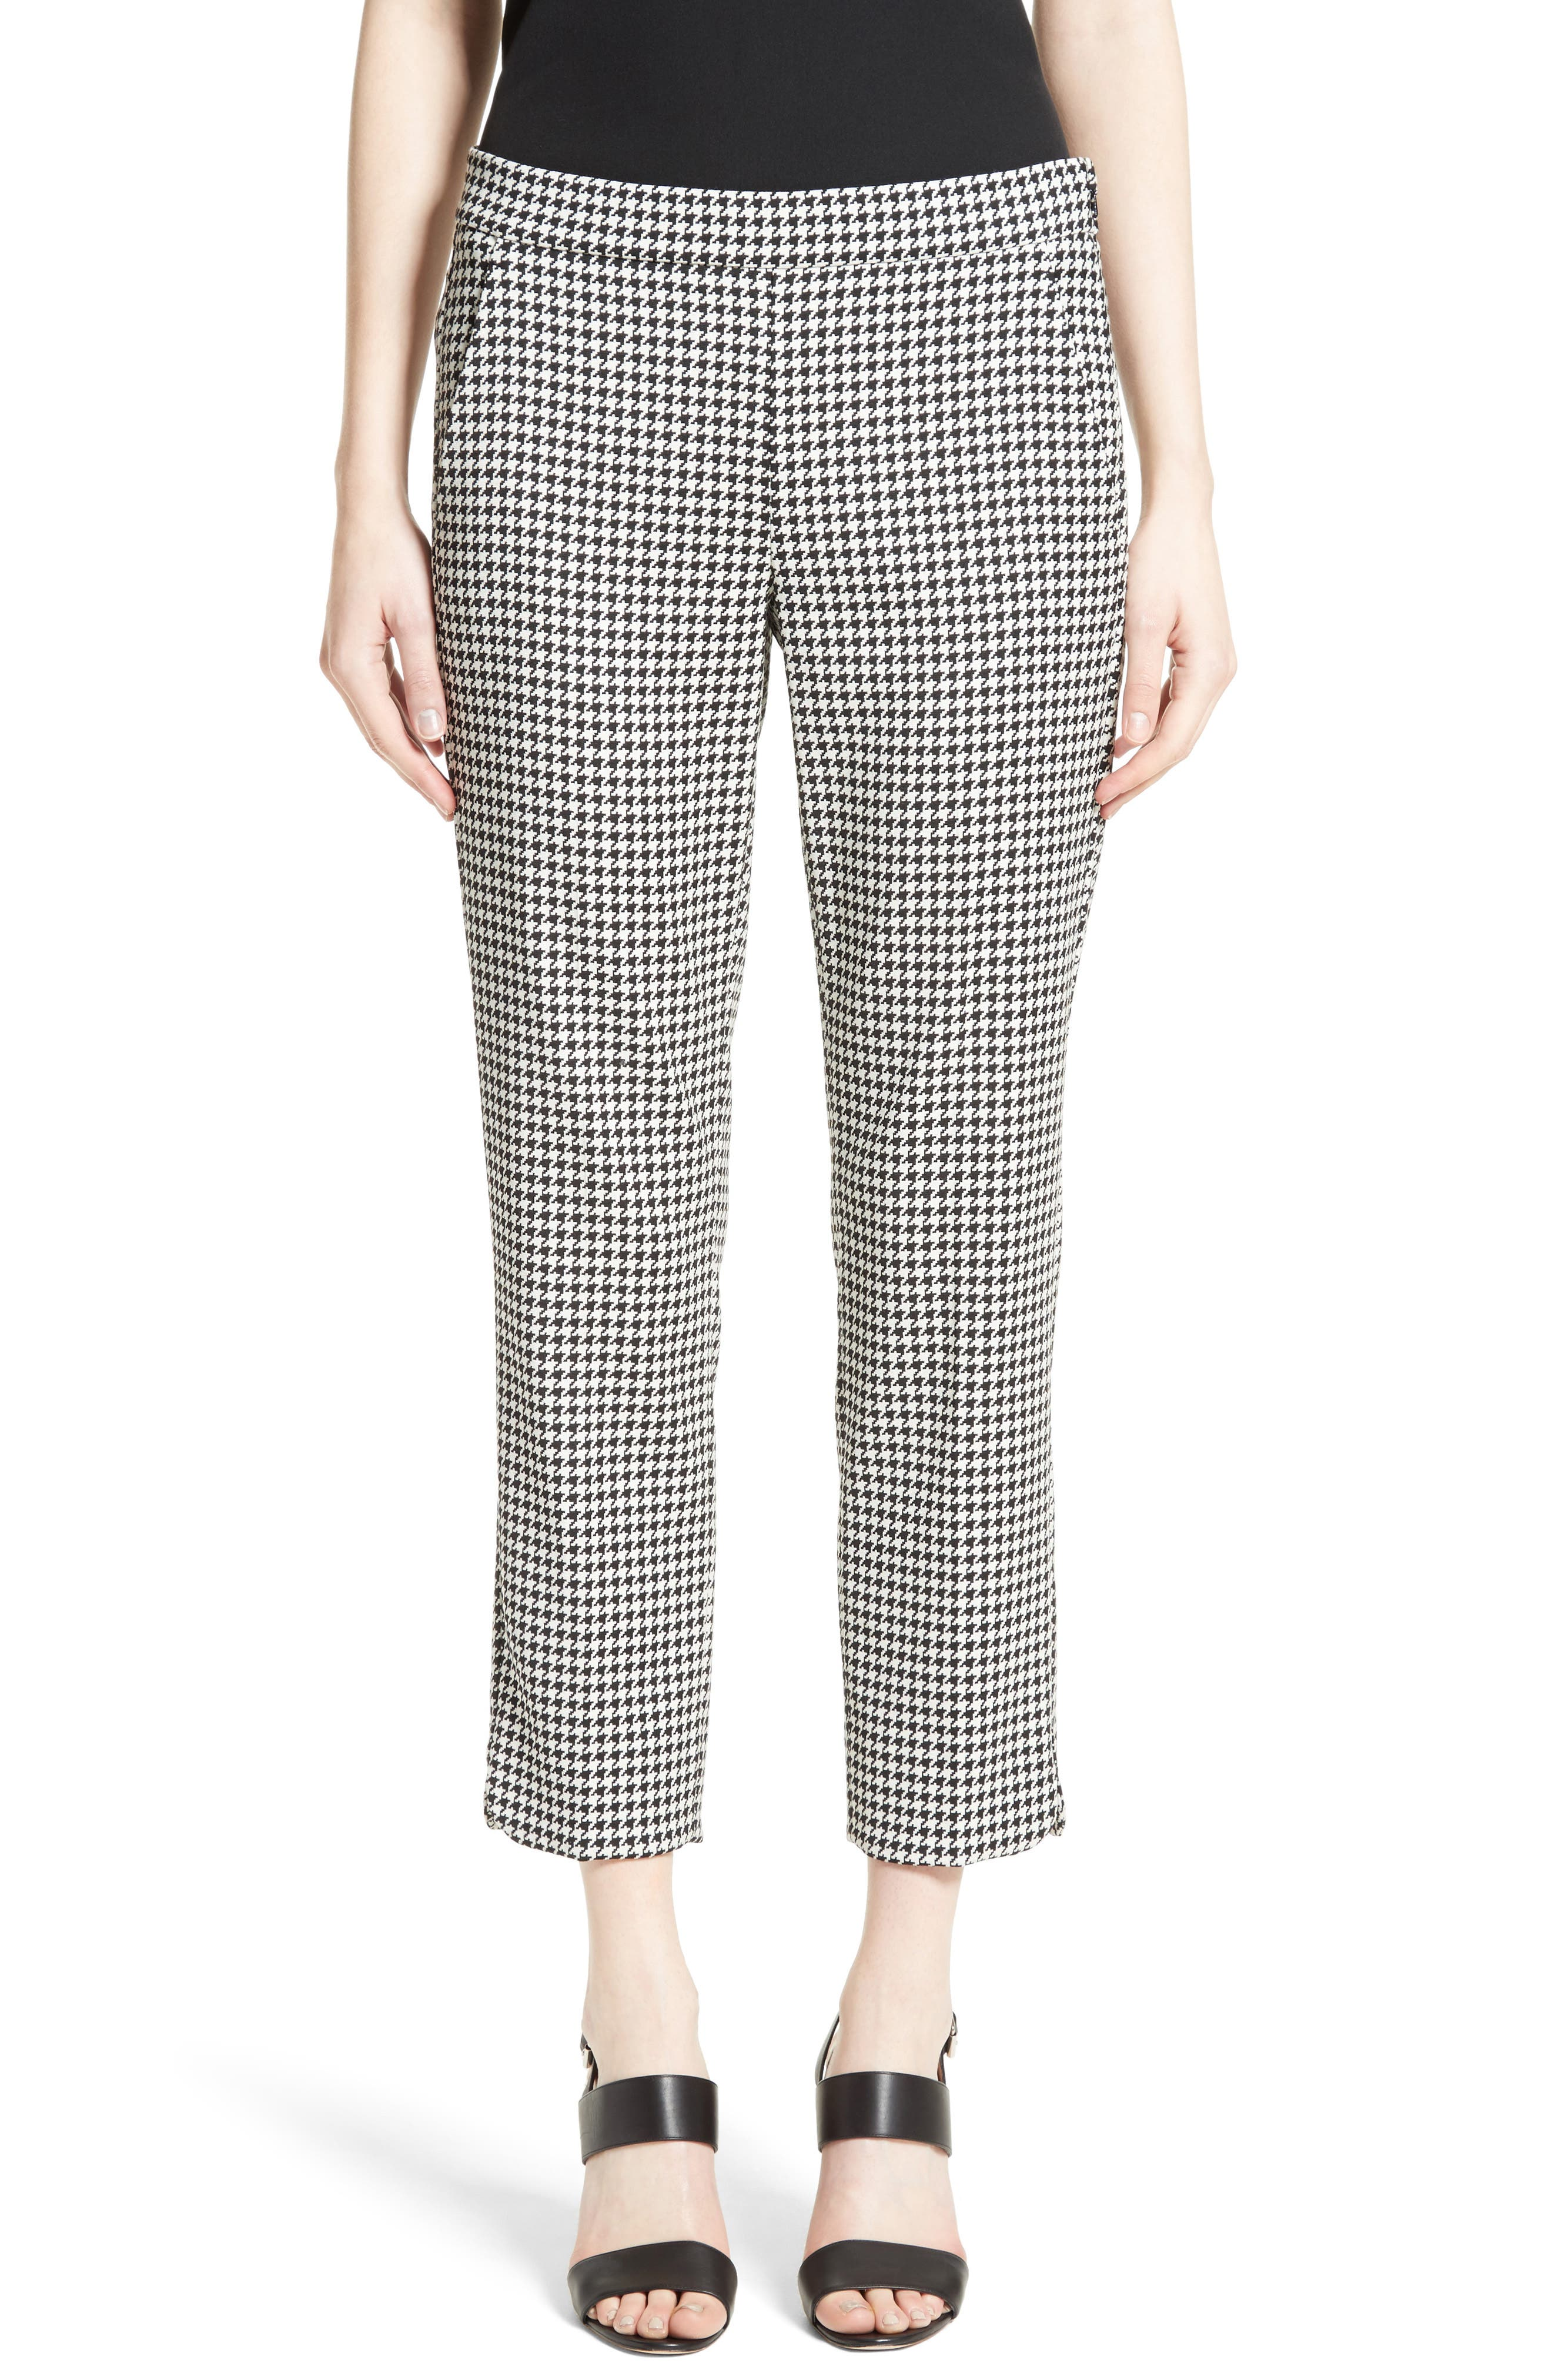 Astrale Houndstooth Wool Blend Pants,                         Main,                         color, 001